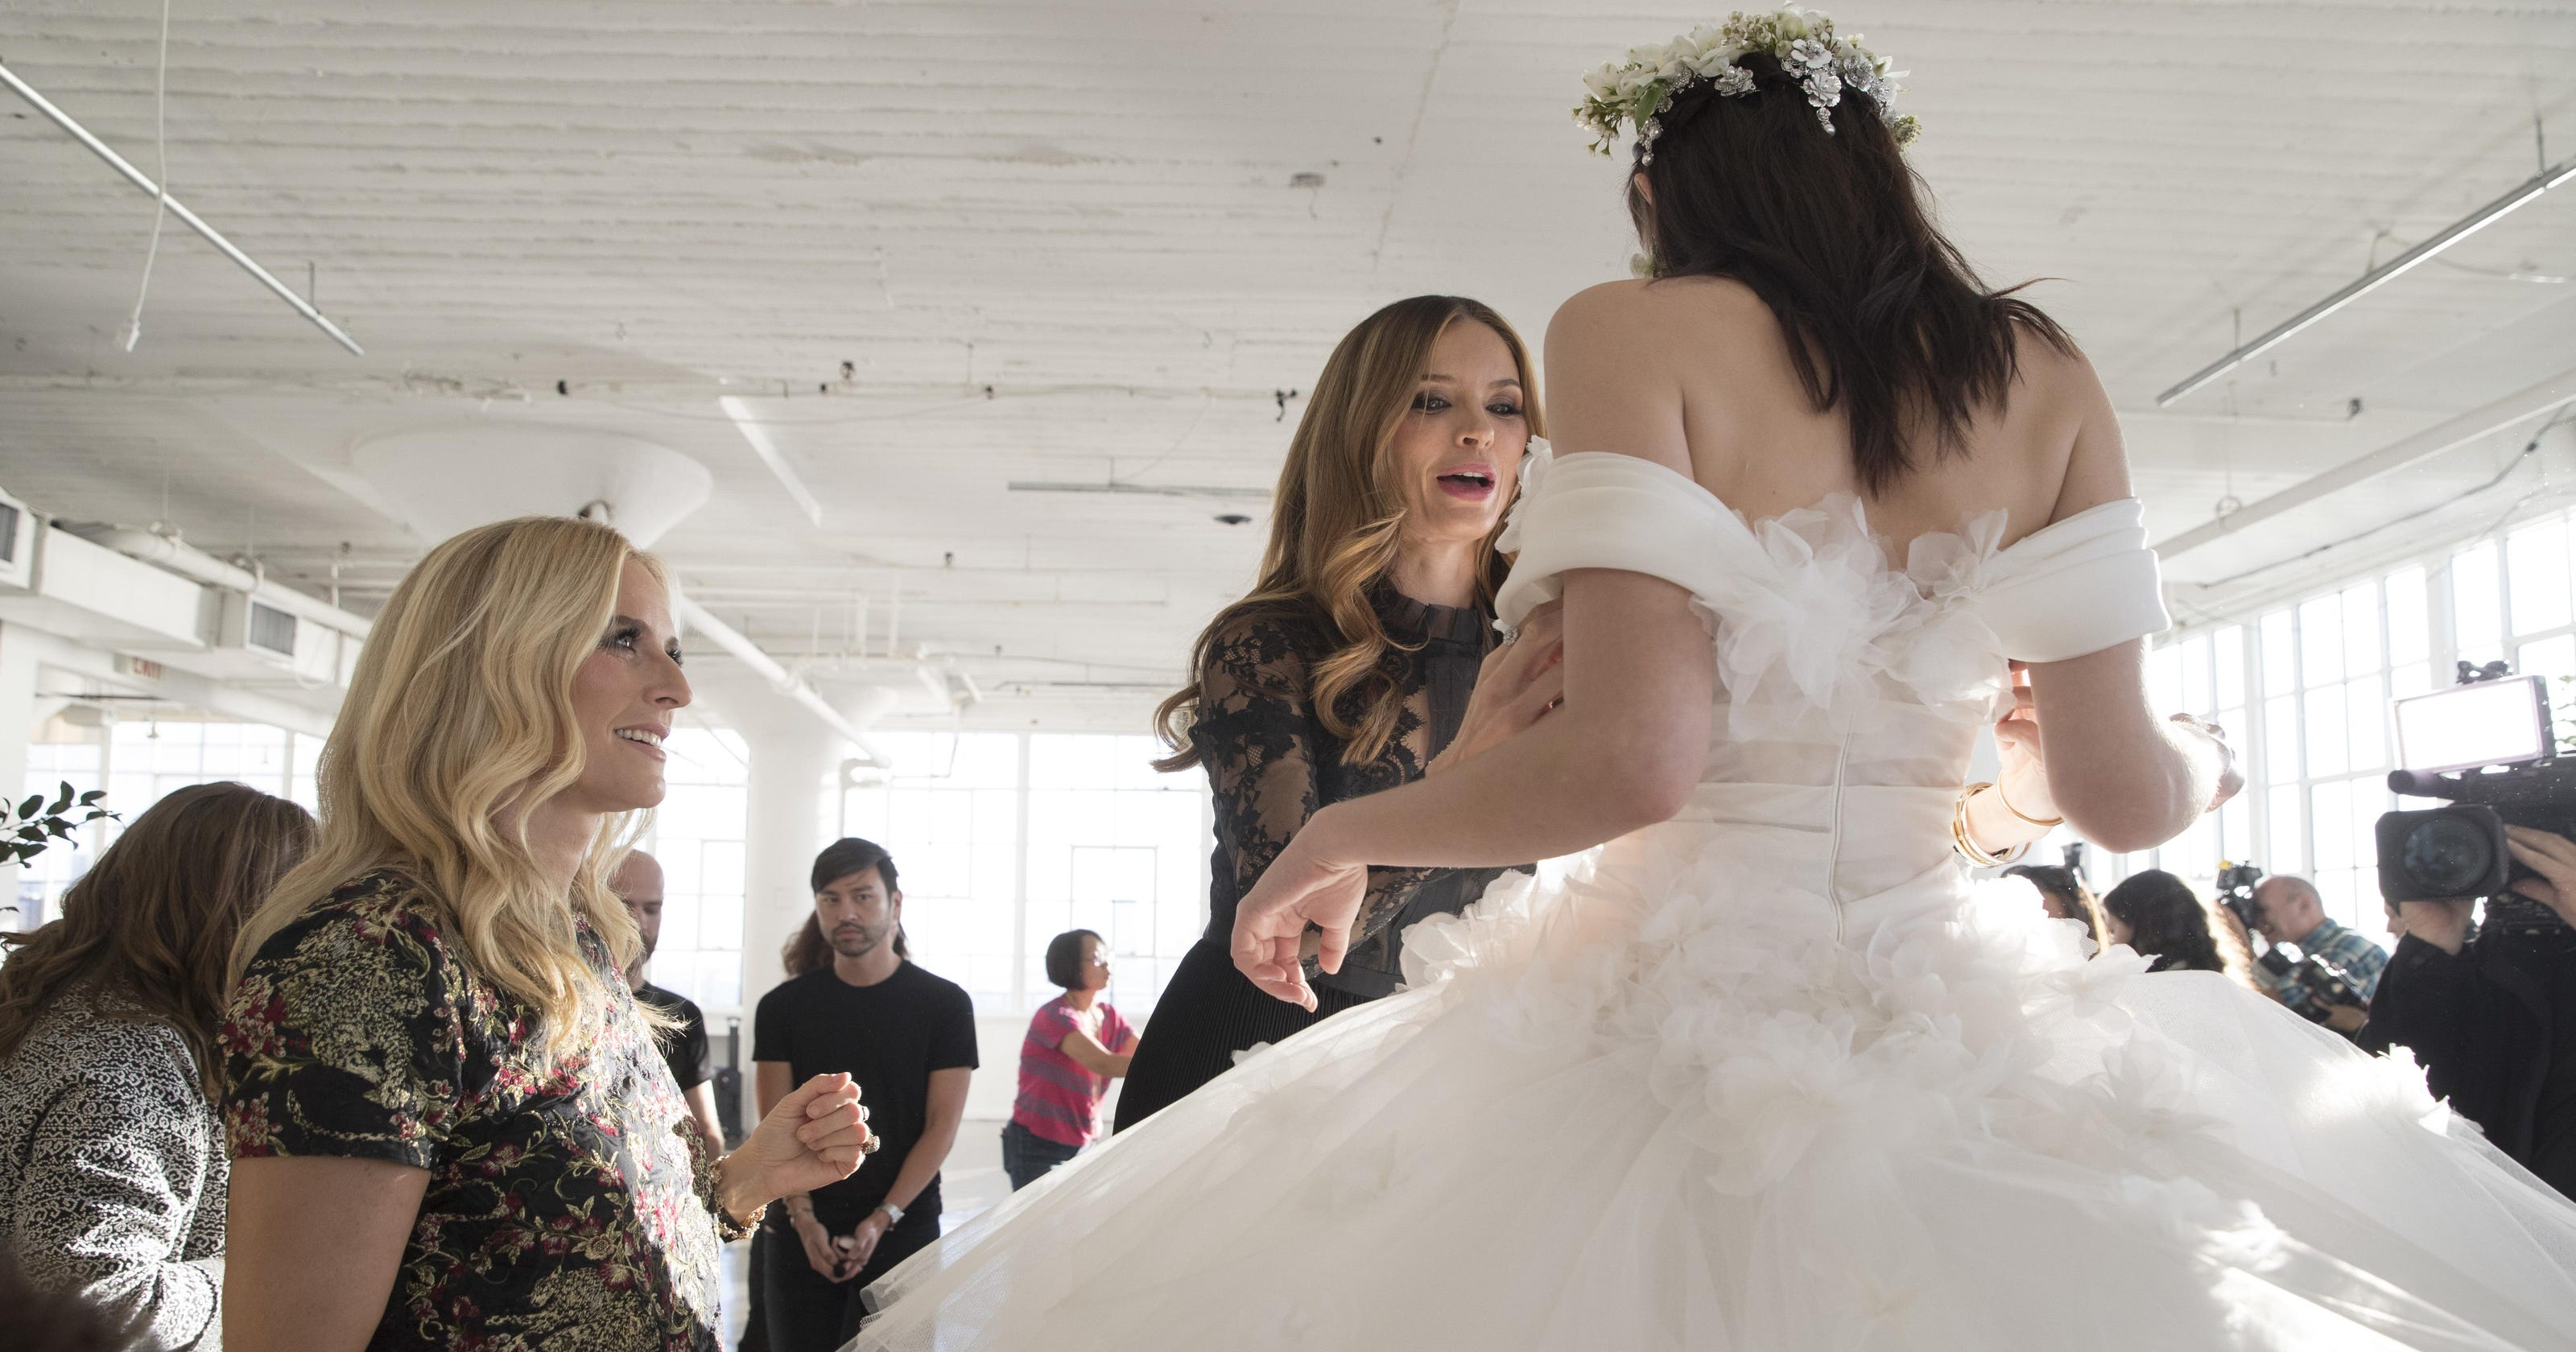 f914d9f9d87 Bridal industry disrupted as marriage rates fall